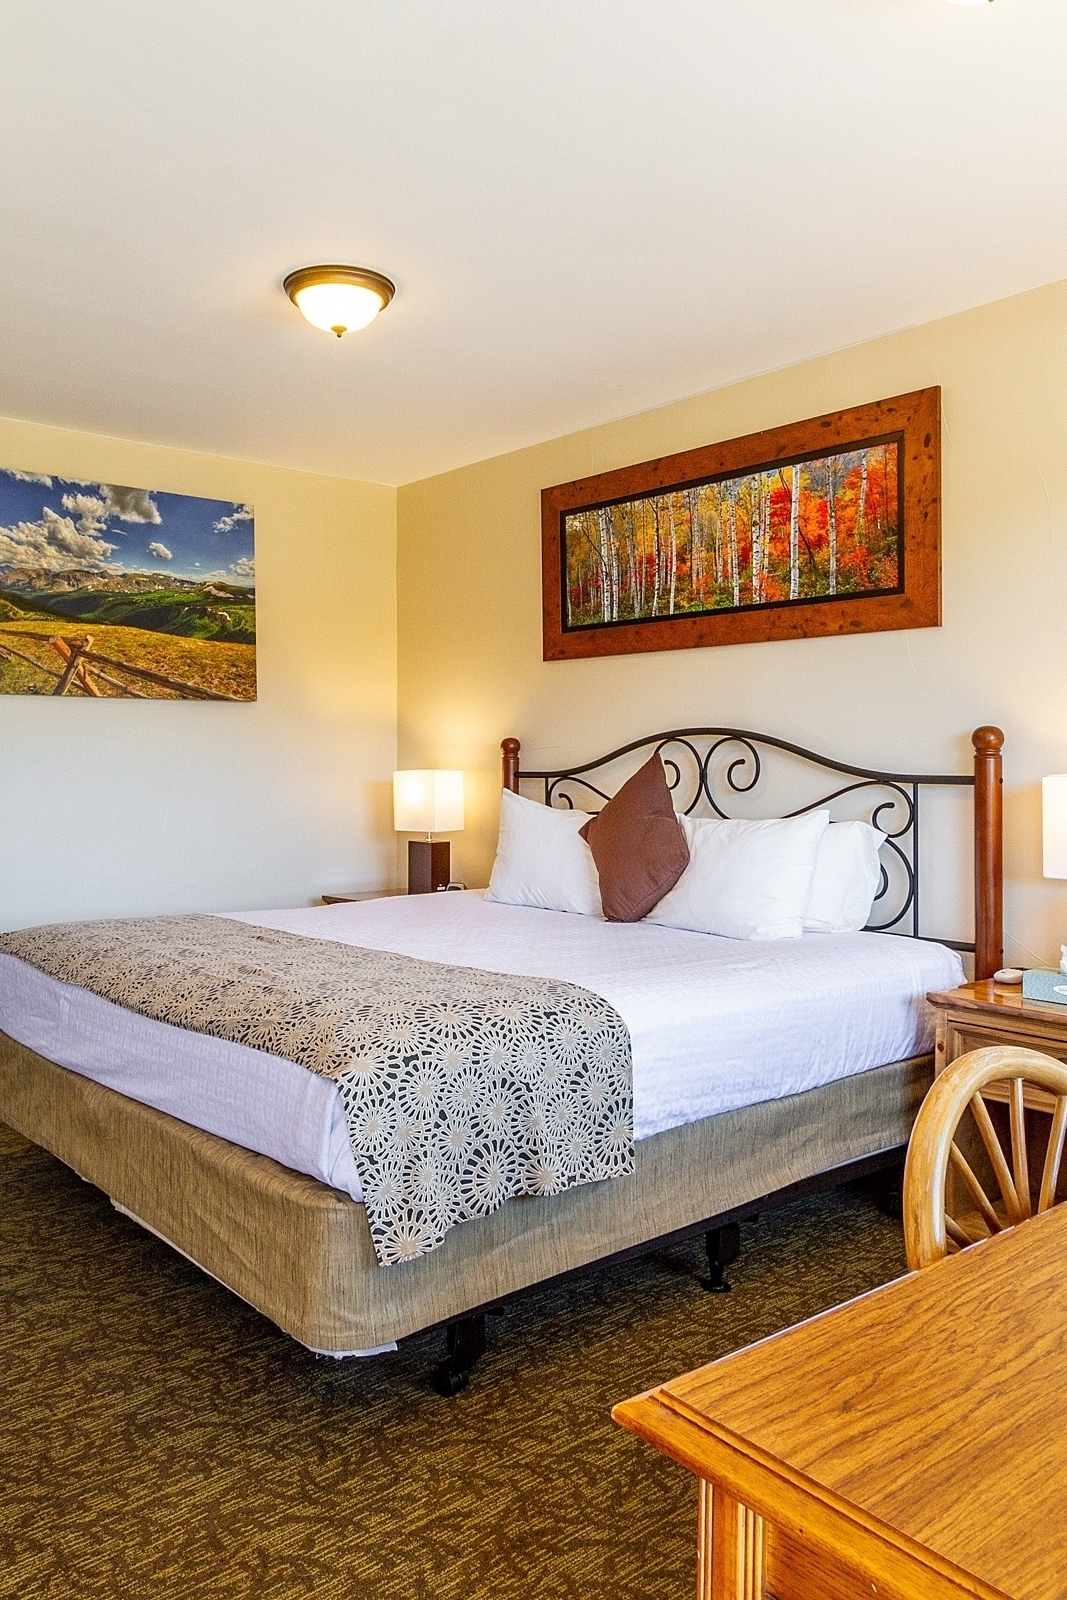 Coyote King - Recently remodeled, the Coyote King is the papa bear of beds. Re-energize and stretch out in comfort after a big day in this non-smoking room surrounded by mountains.